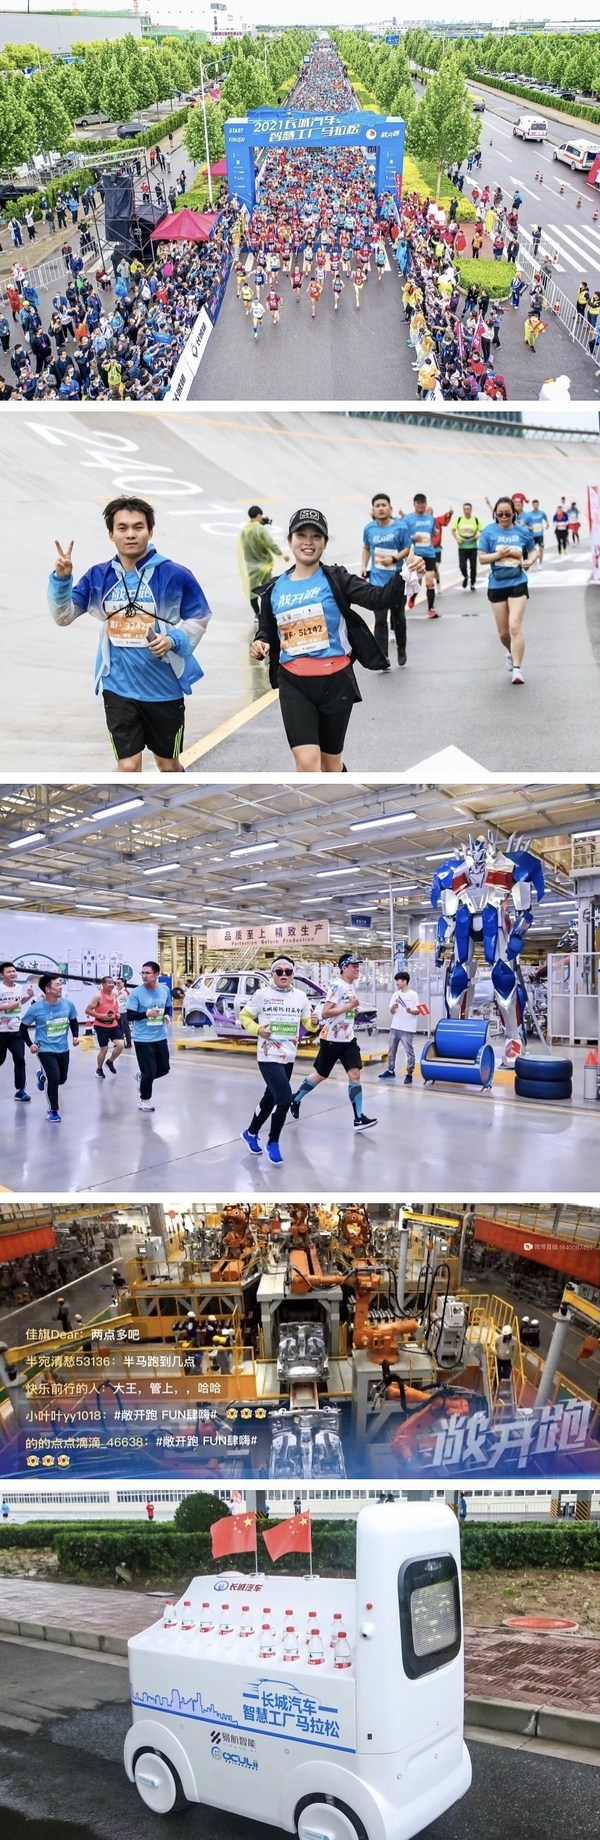 GWM hosts marathon in the smart factory to show its scientific charm